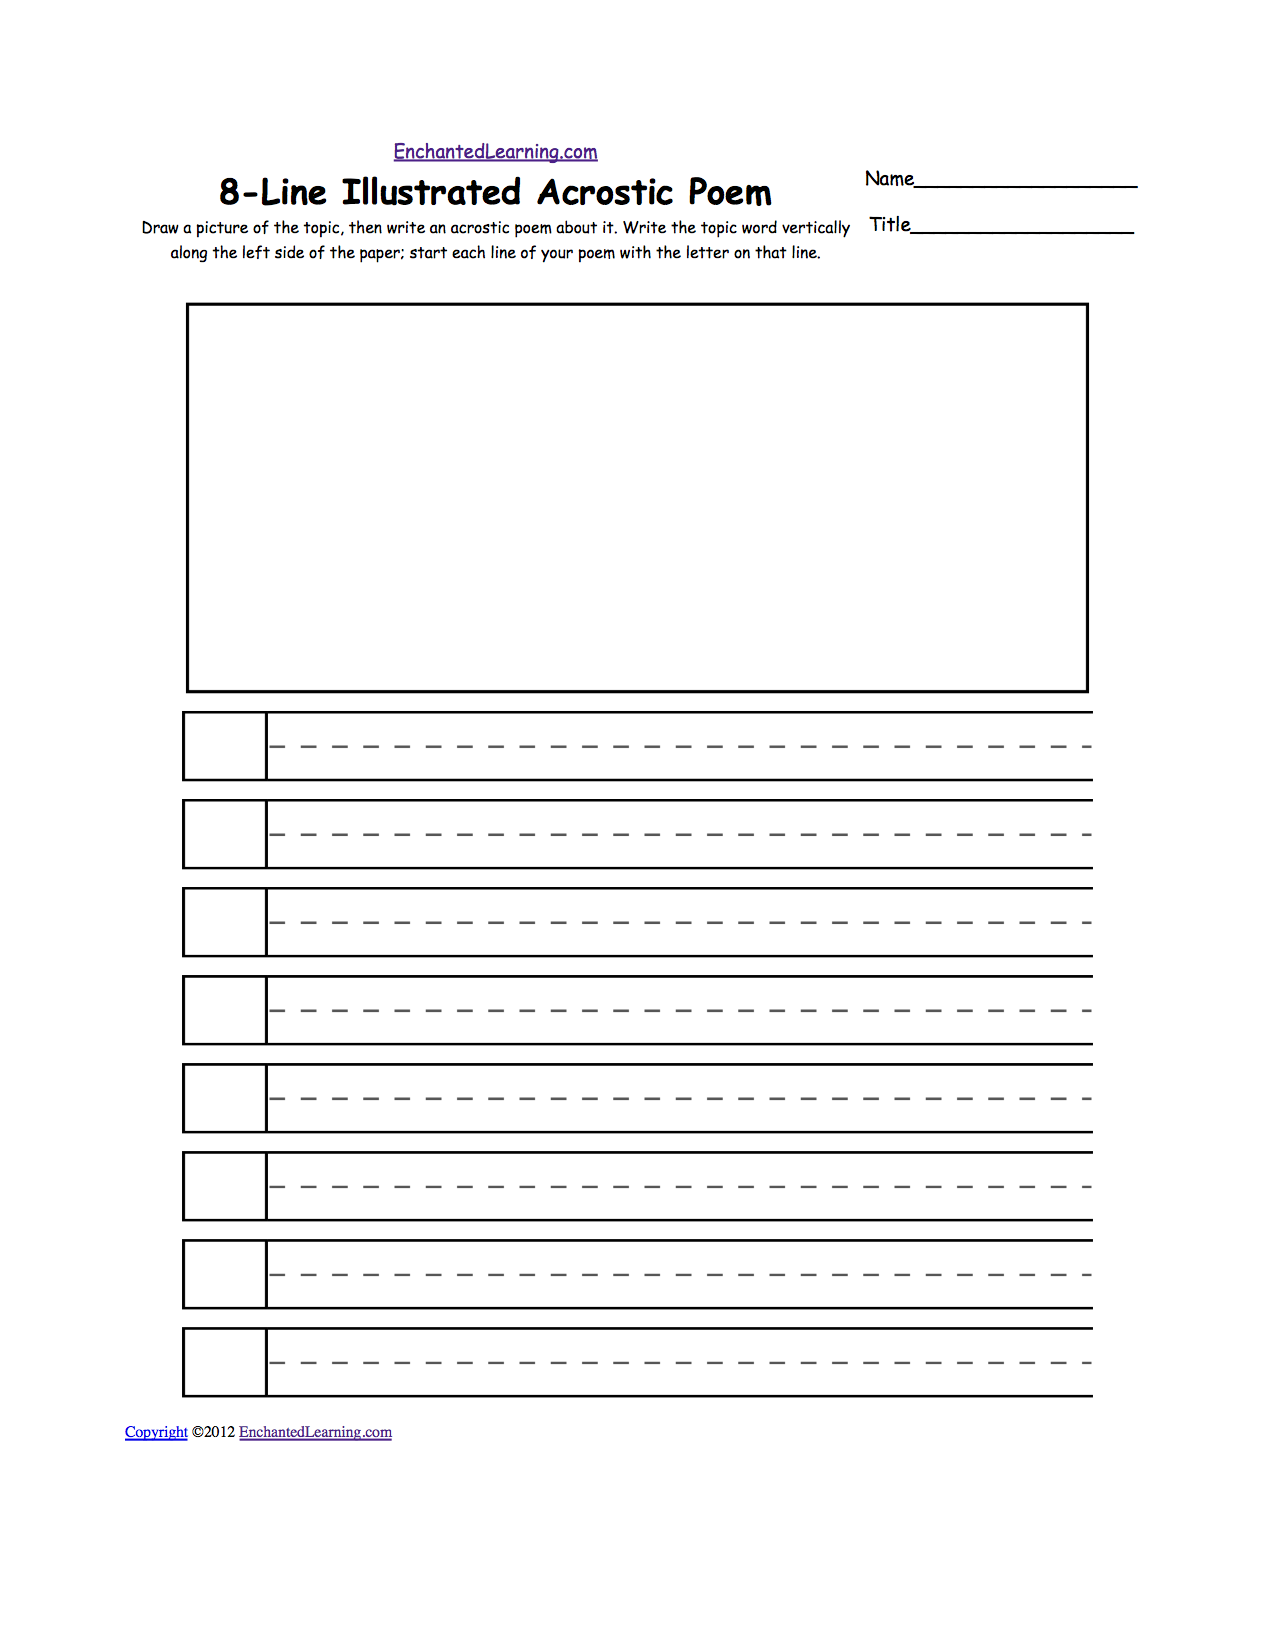 Printables Writing Poetry Worksheets blank illustrated acrostic poem worksheets handwriting lines pick a topic draw picture of it then write an about on dotted the word vertically along left s